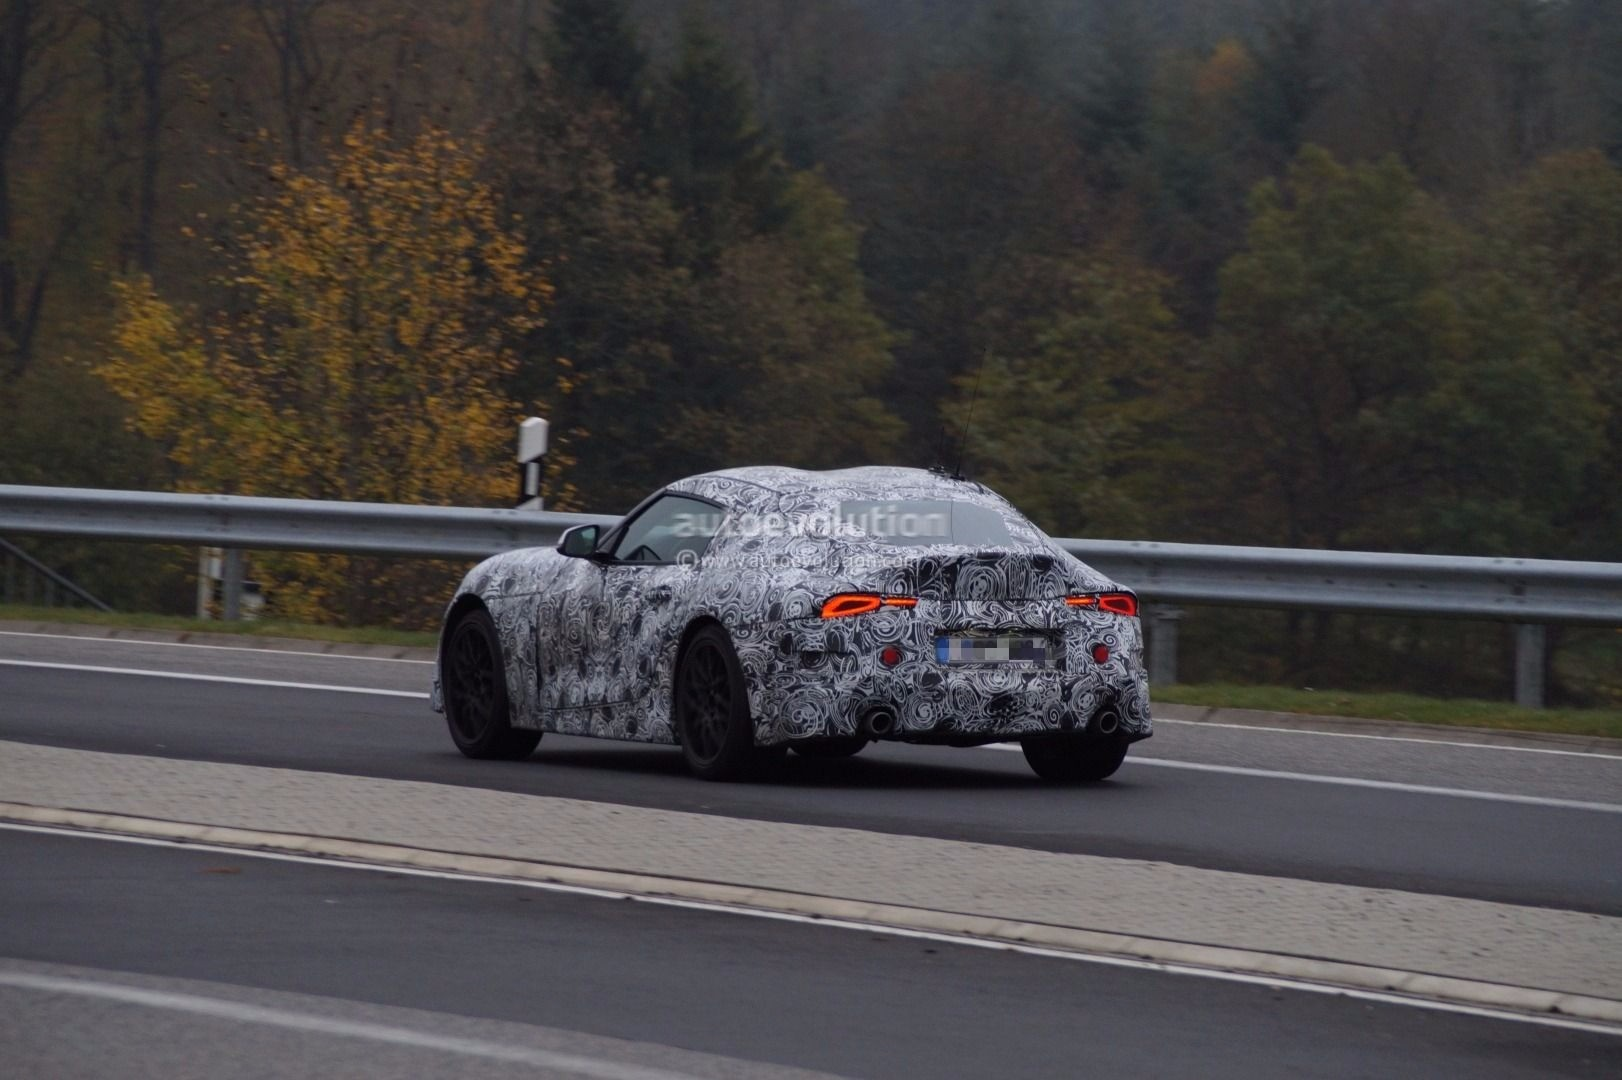 2019 Bmw Z4 And Toyota Supra Share Nurburgring Testing Session Autoevolution